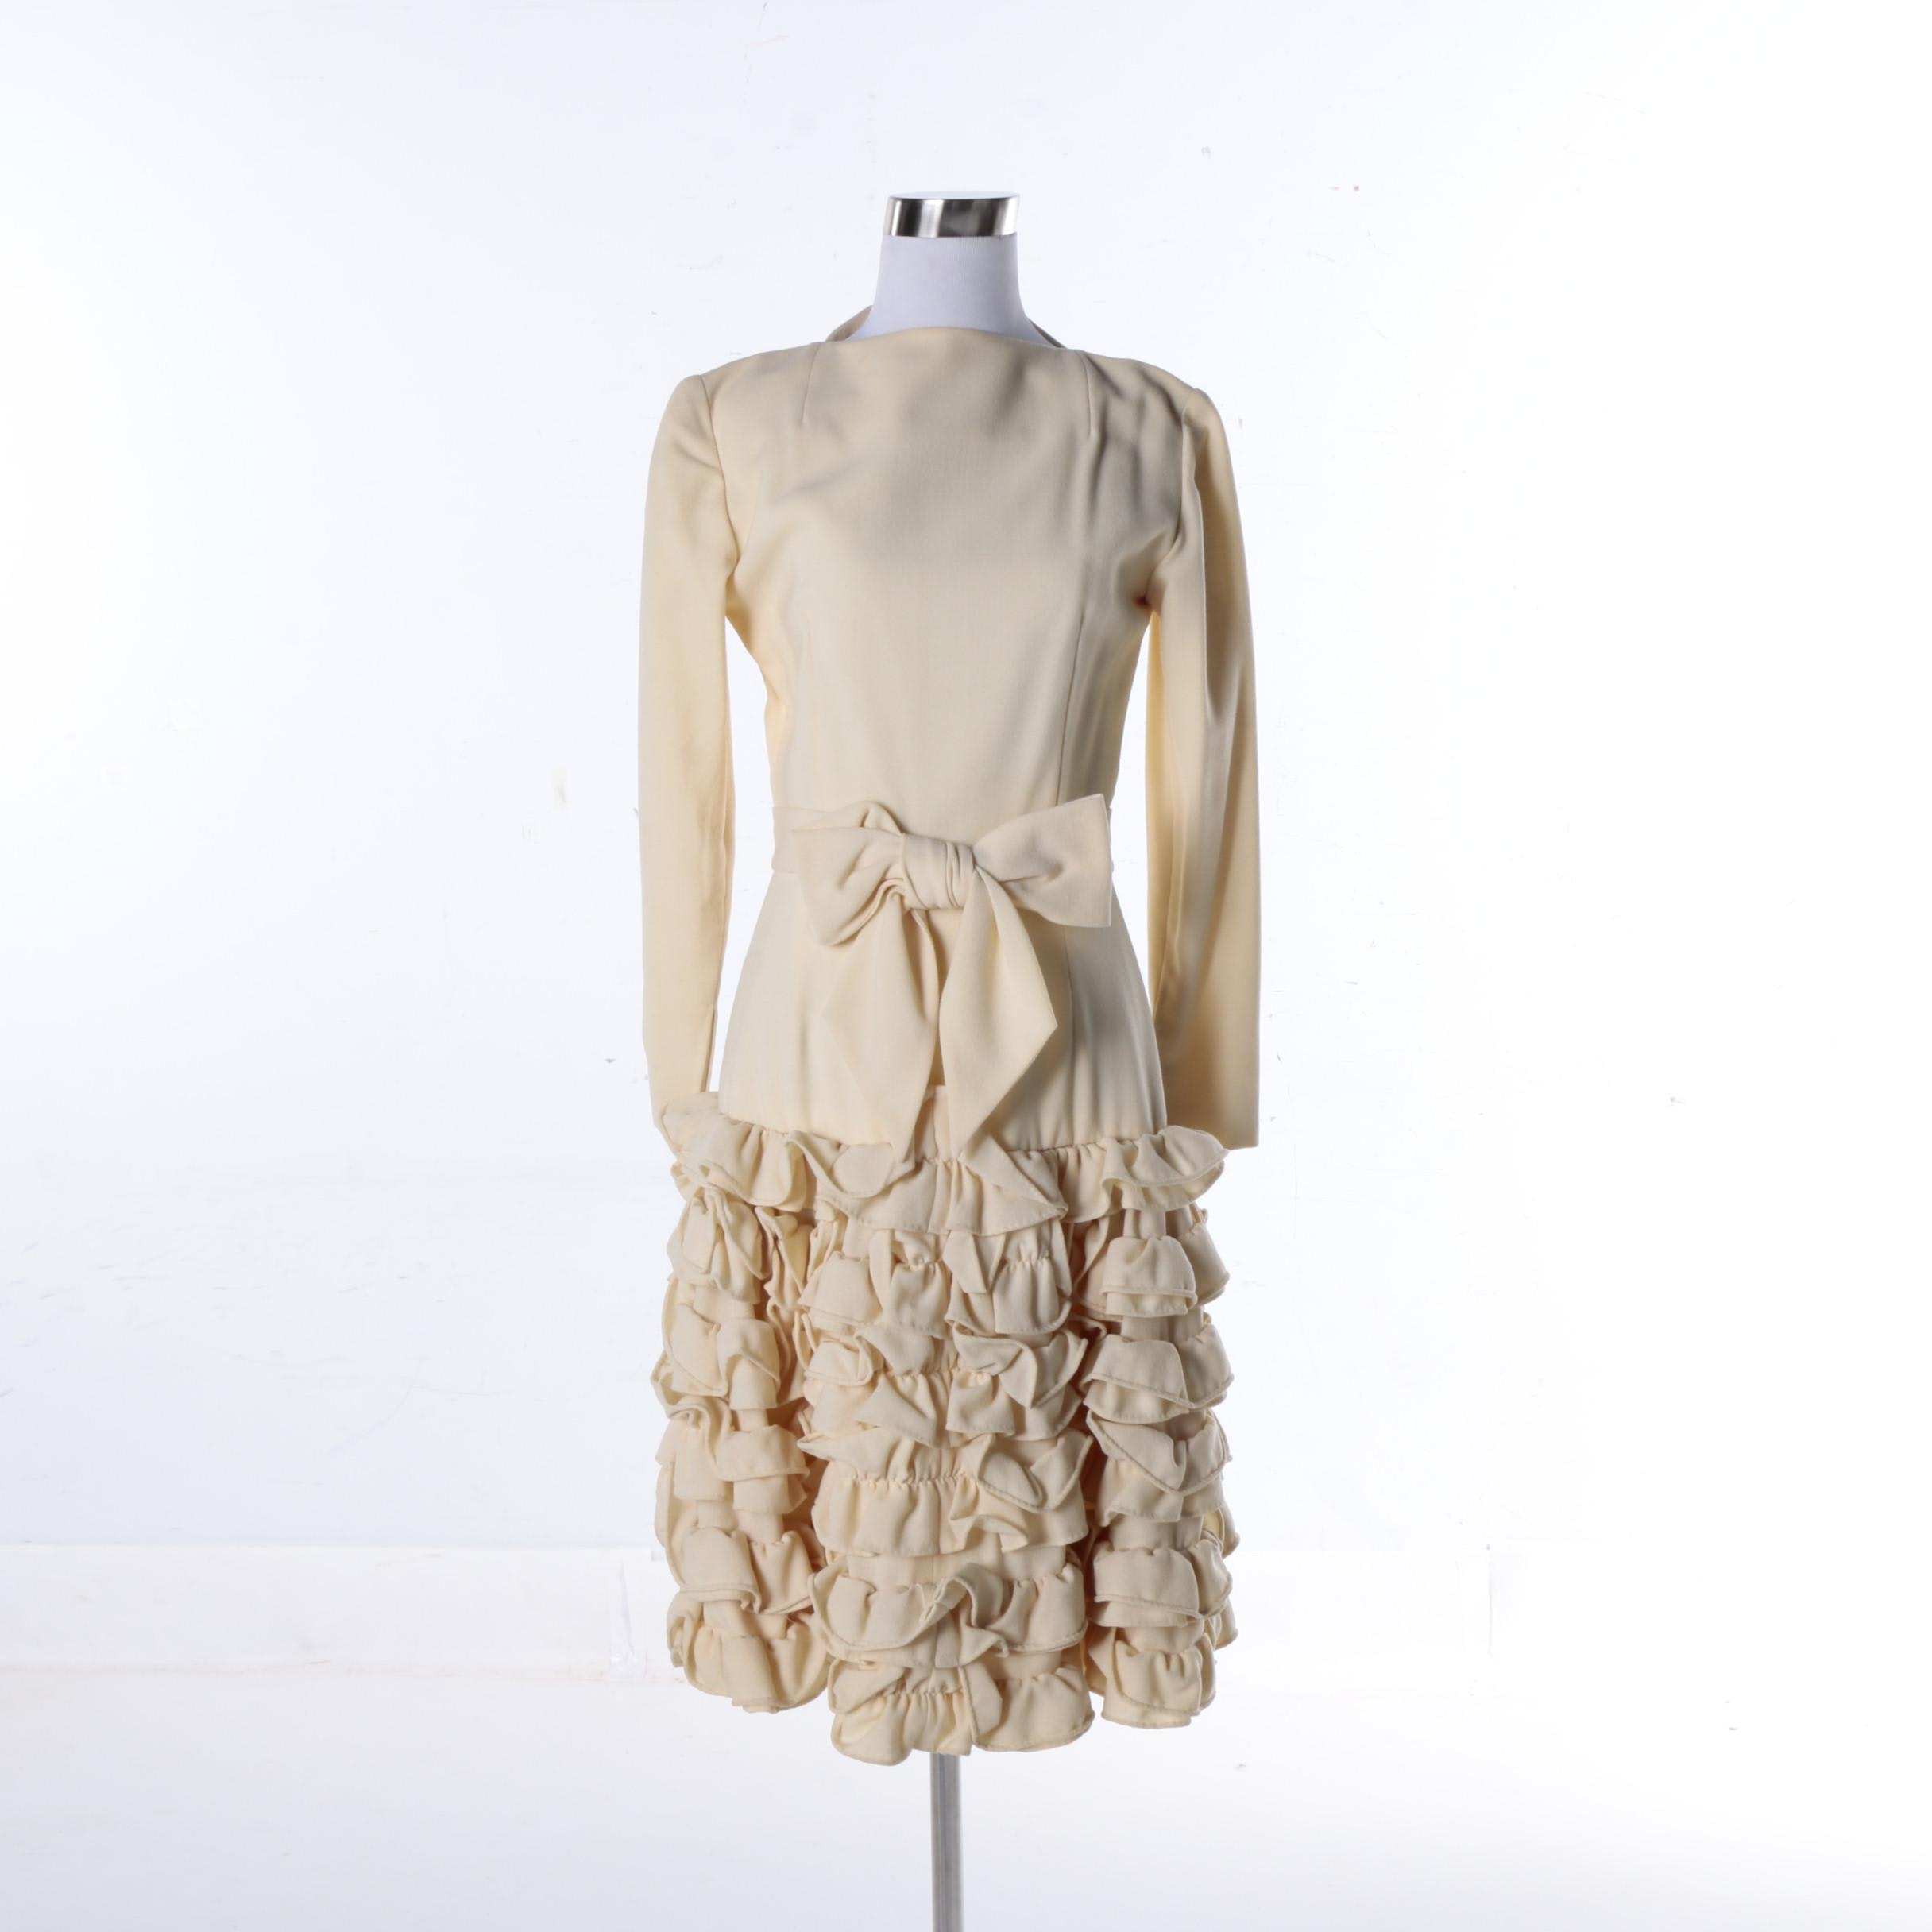 Vintage Cardinali Wool Crepe Ruffle Dress